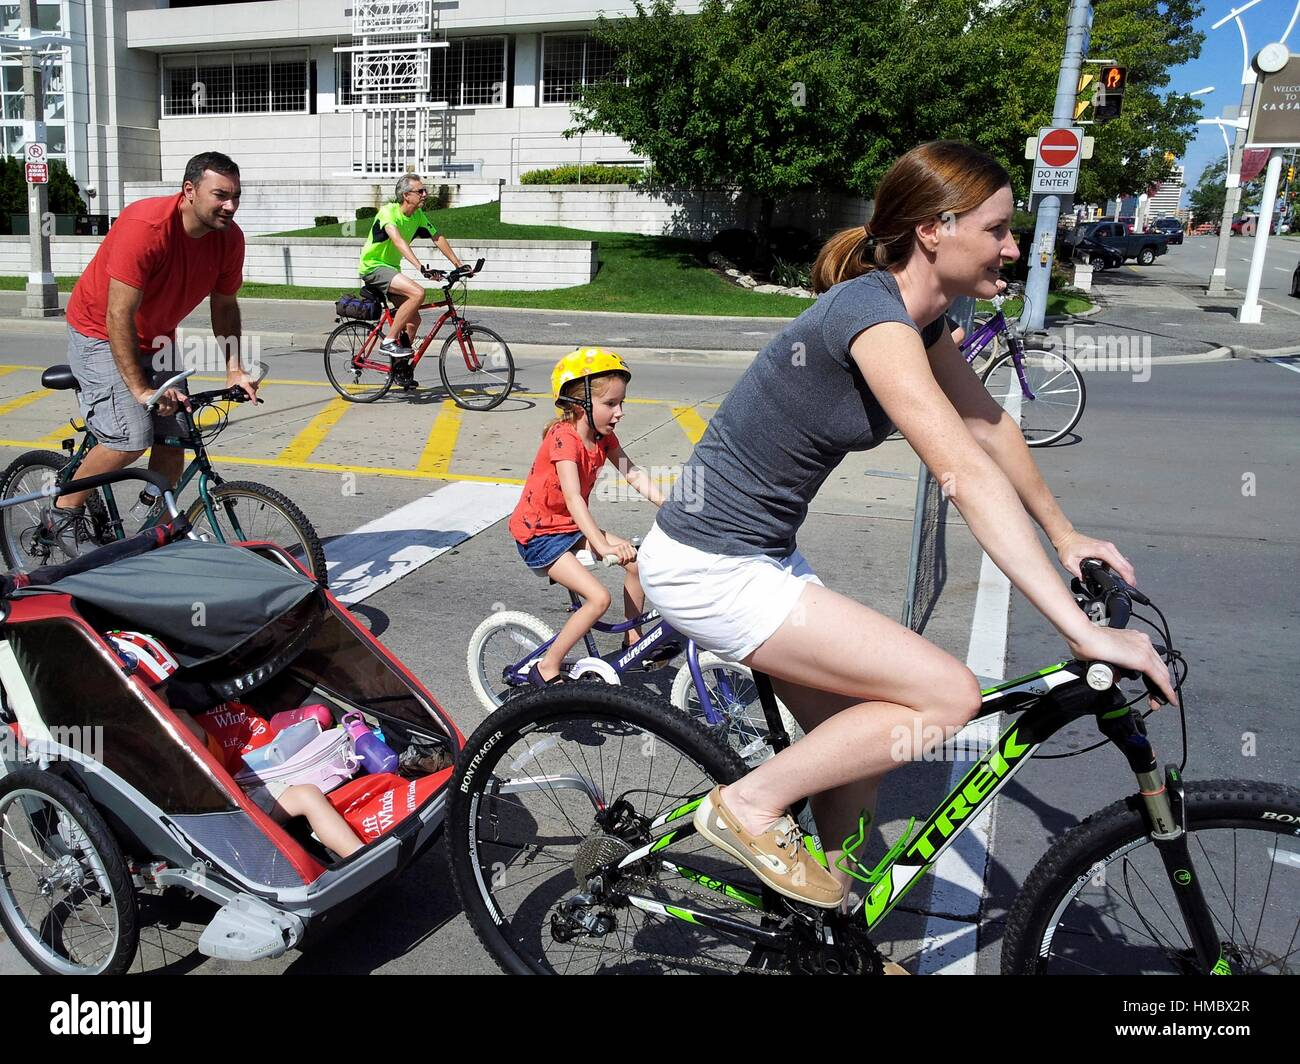 A woman on a bicycle pulls a baby in an attachment while other people bike through downtown streets during he second - Stock Image